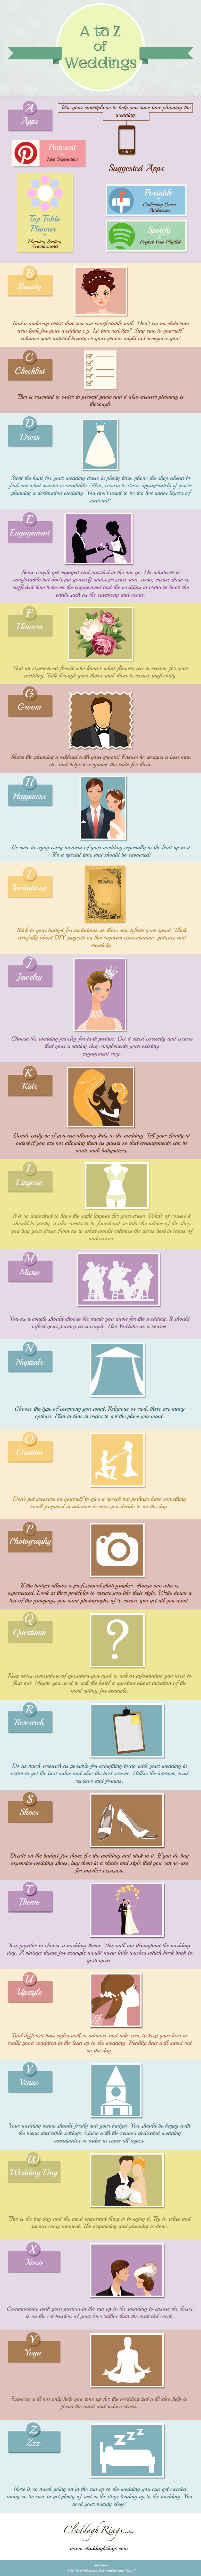 A-Z of Weddings